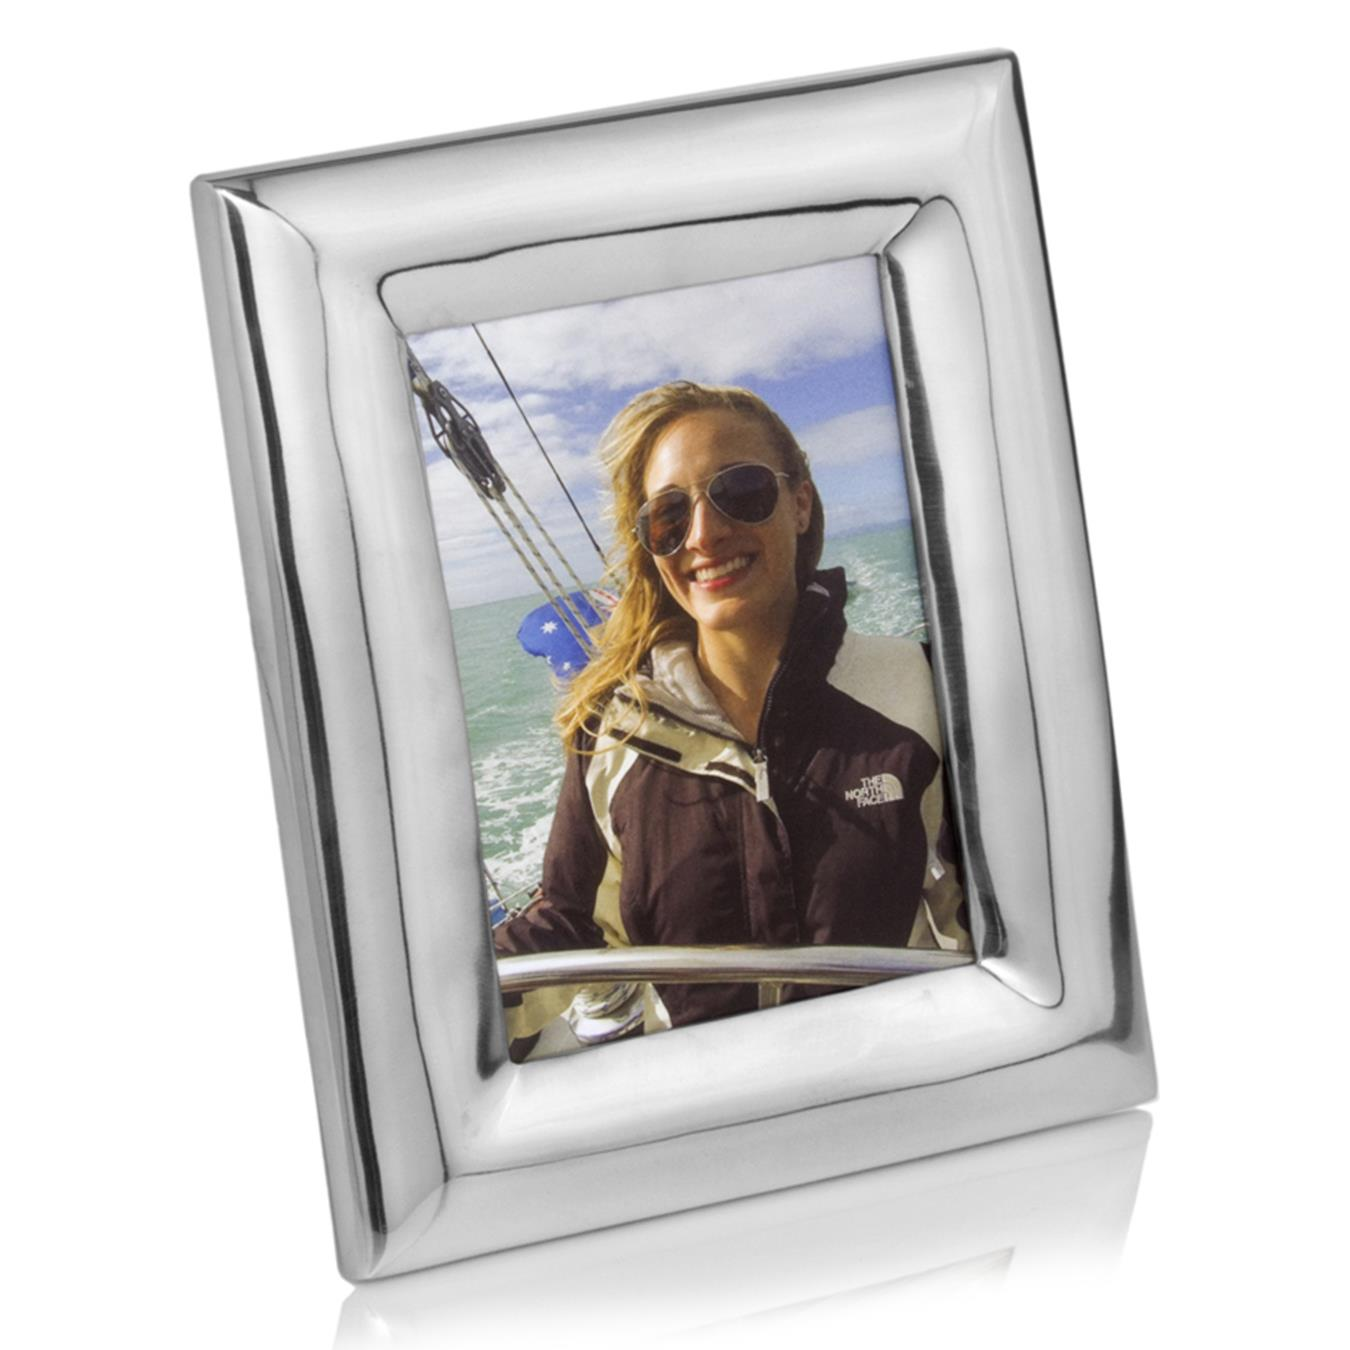 Modern Day Accents Marco Modern 5 x 7 Photo Frame